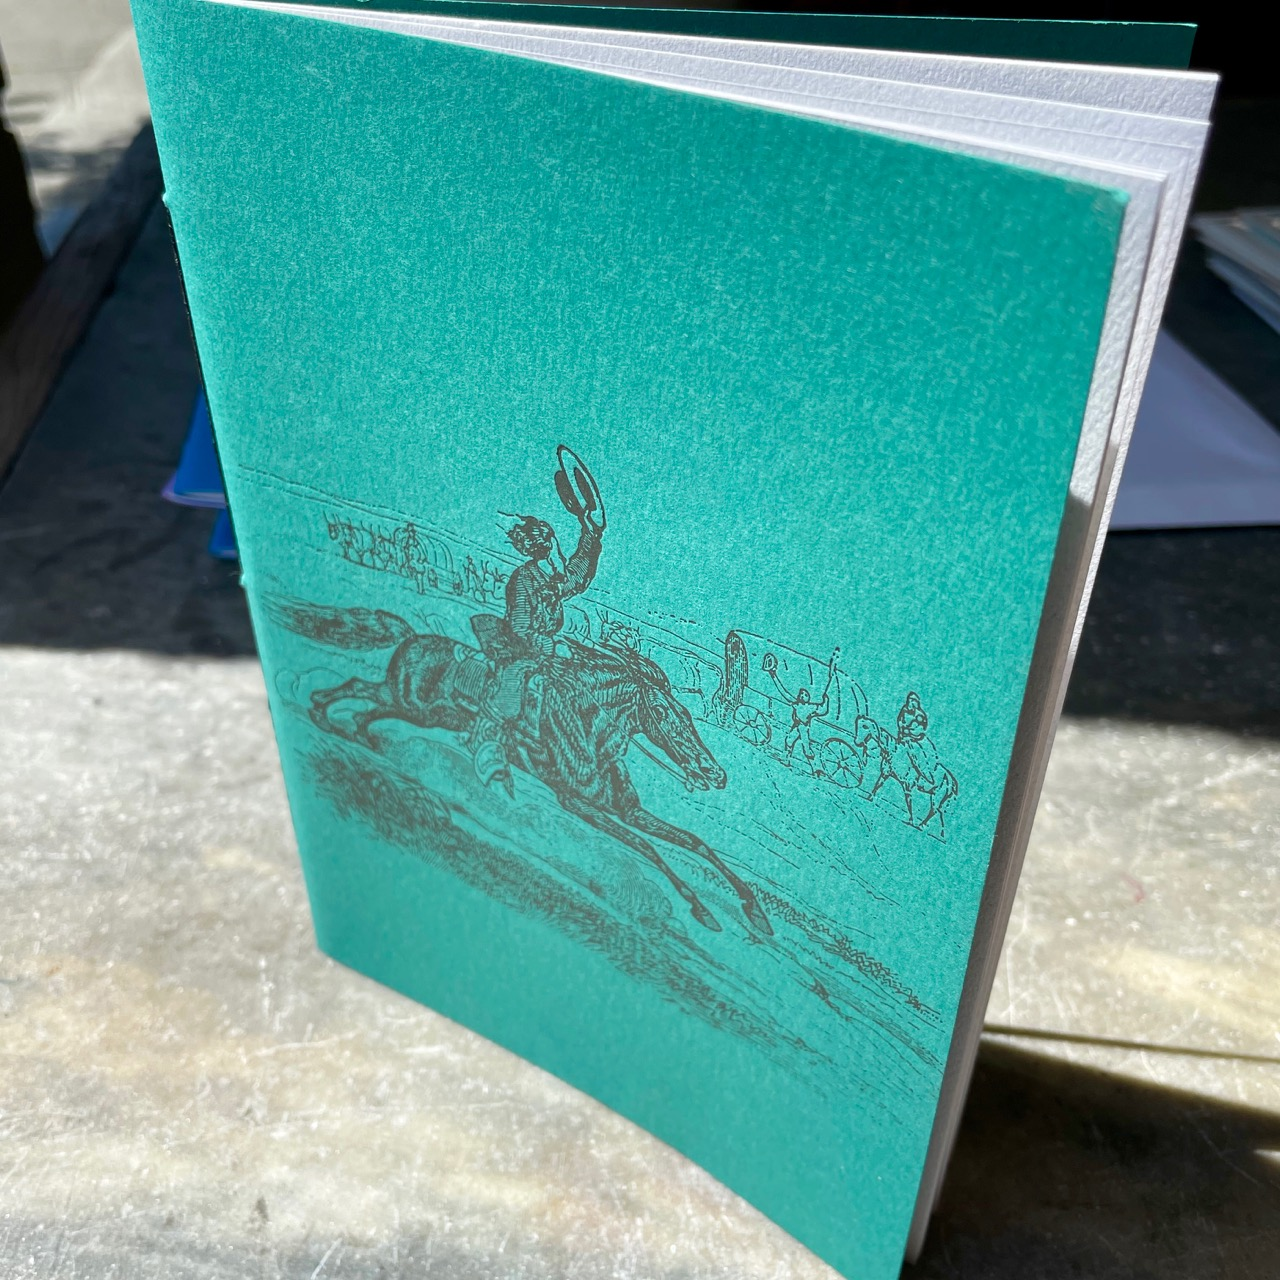 Notebook with green cover that is letterpress printed with vintage Pony Express image in antique gold ink